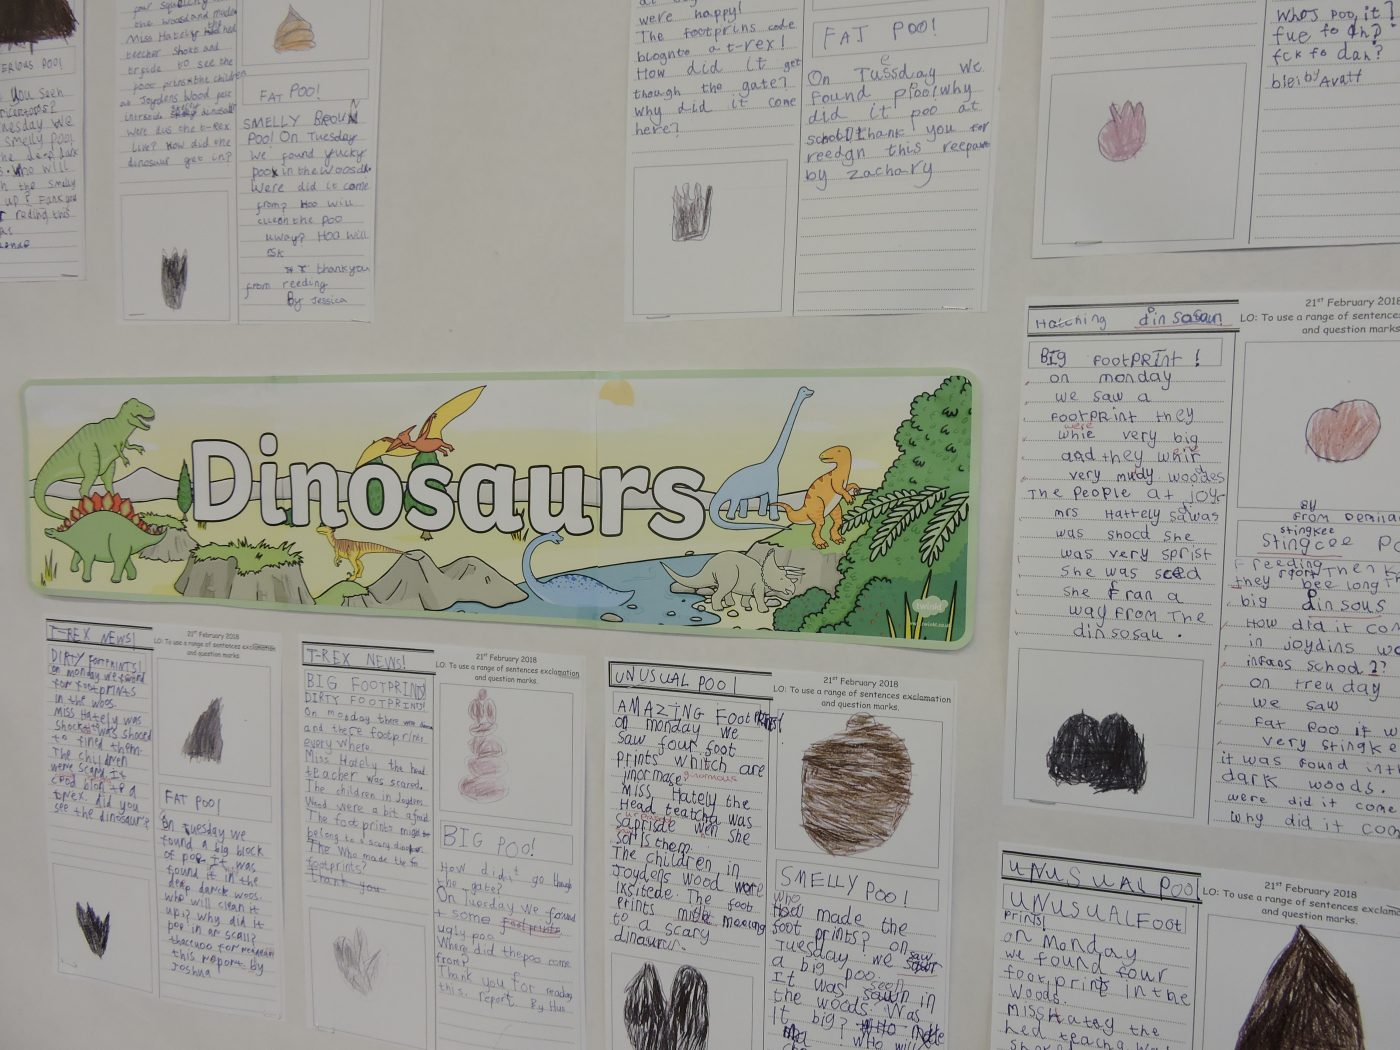 Big Footprints and Smelly Poo in Year One